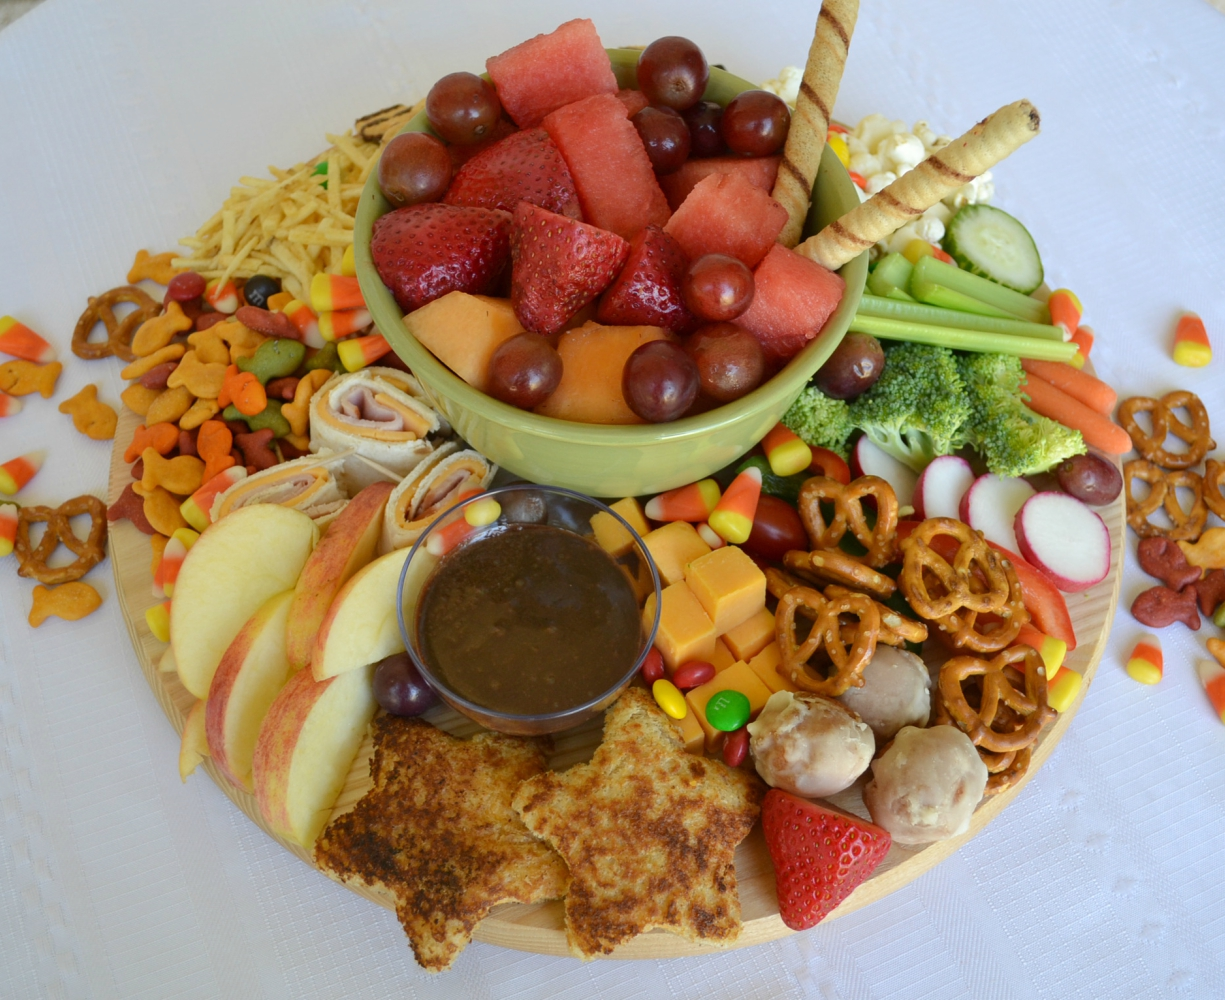 This After School Snack Board is a fun collection of treats for your kids. The board is packed with fruits, veggies, cheese, and sweet treats.